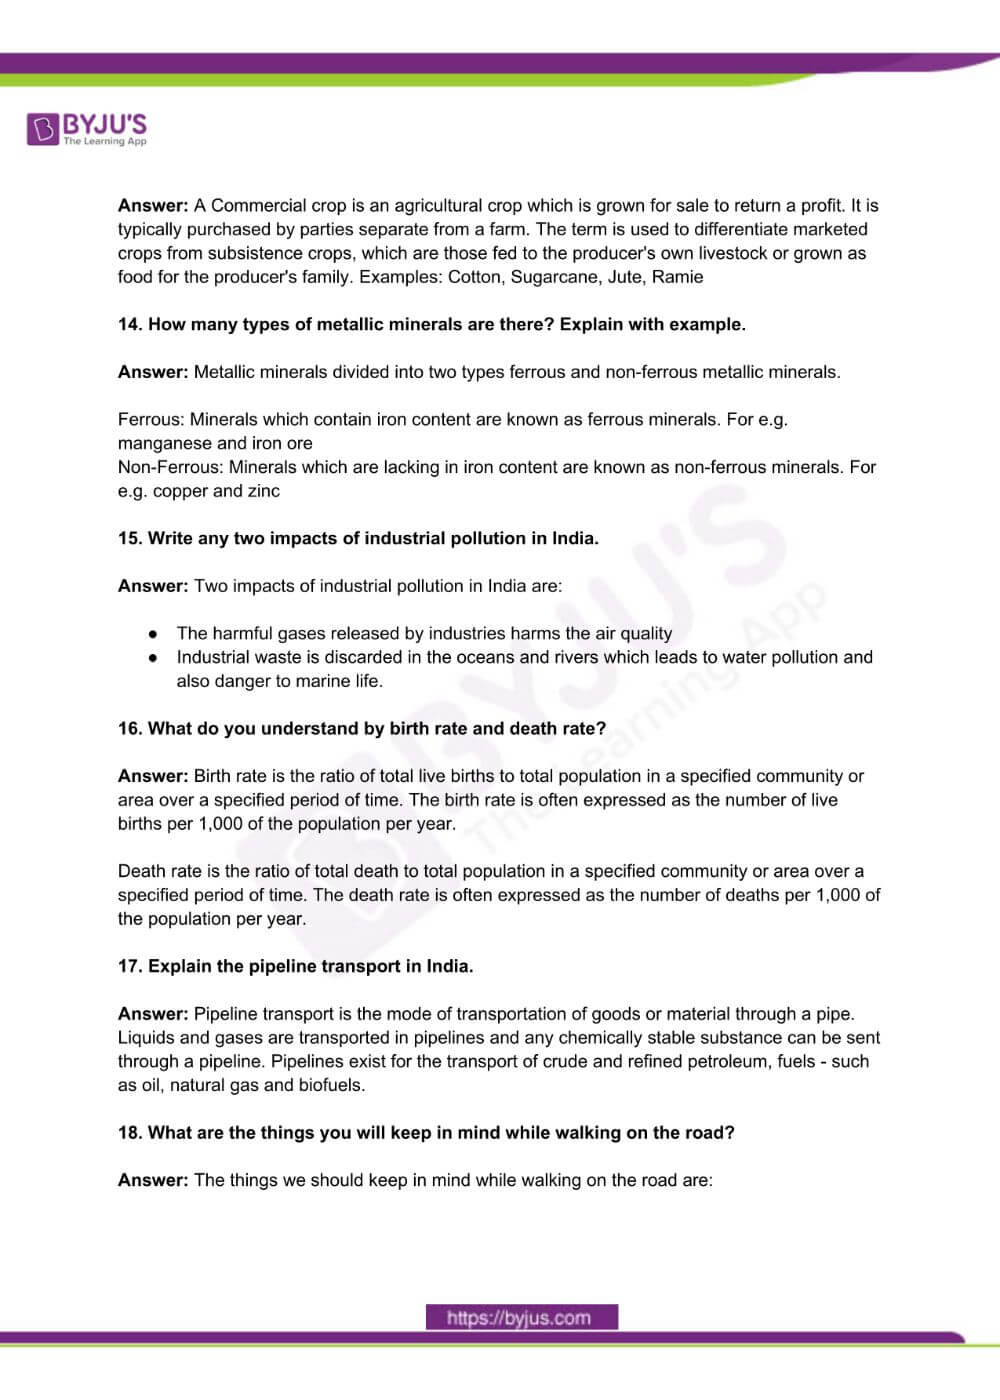 RBSE Class 10 Social Science Question Paper Solutions 2018 PDF 2